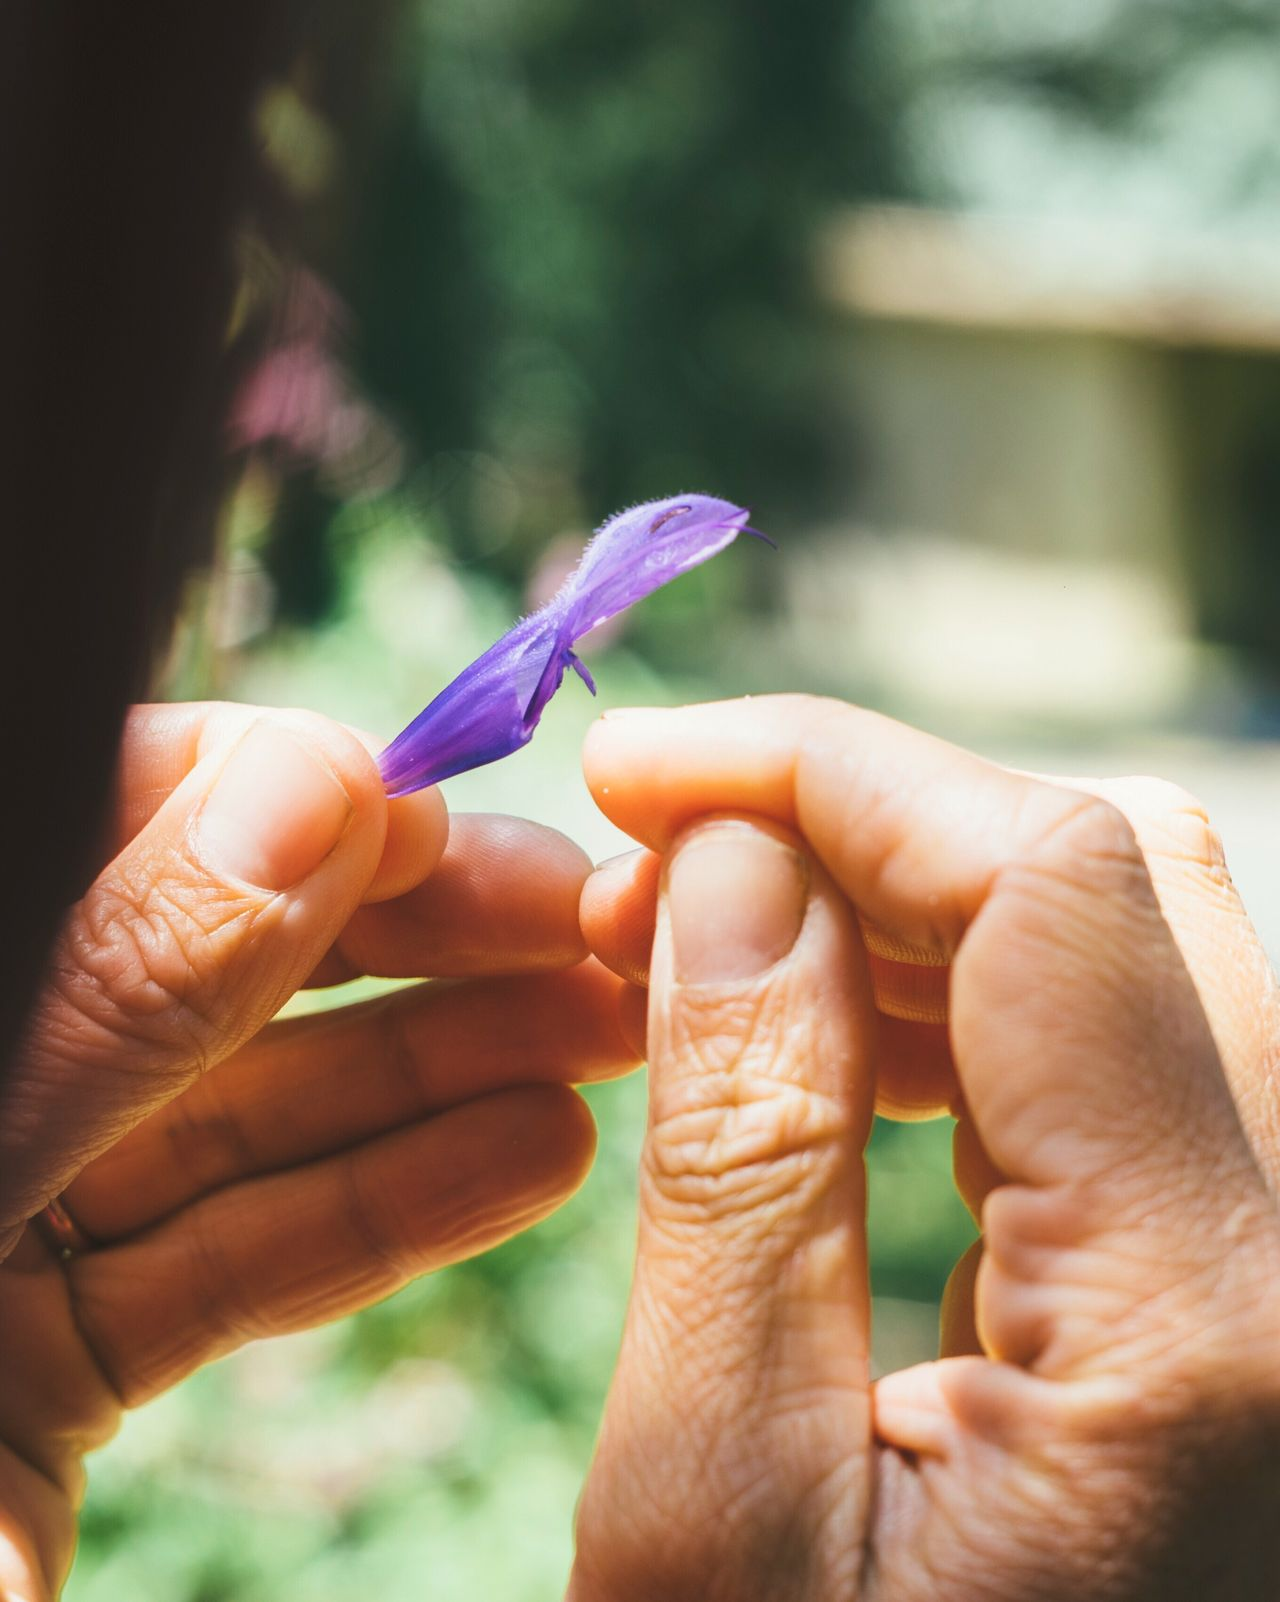 Human Hand Human Body Part Focus On Foreground Holding Human Finger Real People One Person Close-up Outdoors Day Childhood Women People Nature Flower Botany Curiosity Learning Rural Poetry